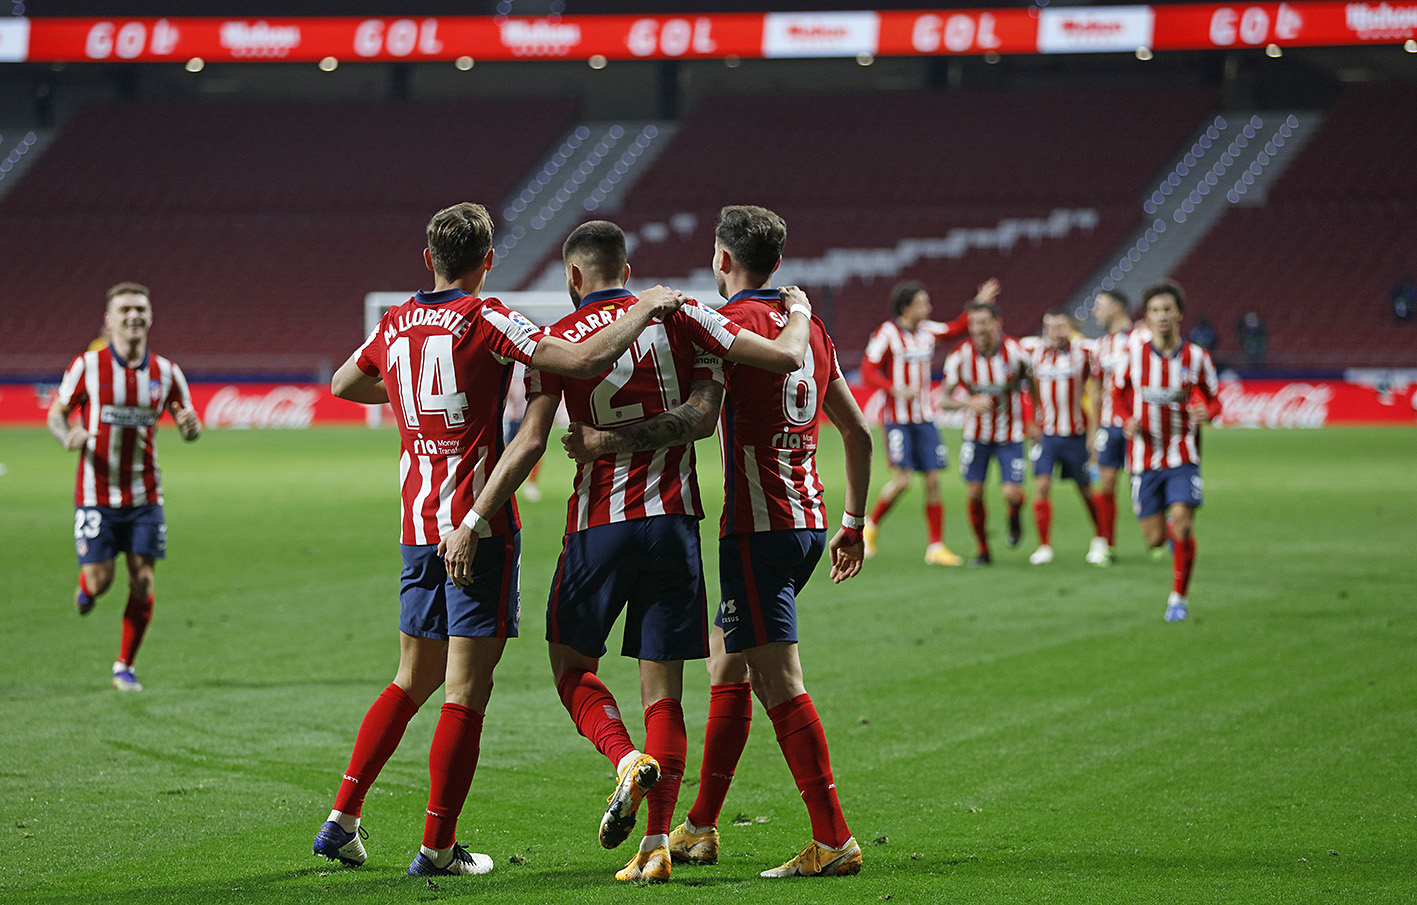 Atletico Madrid surprised by the Barcelona put in front of them